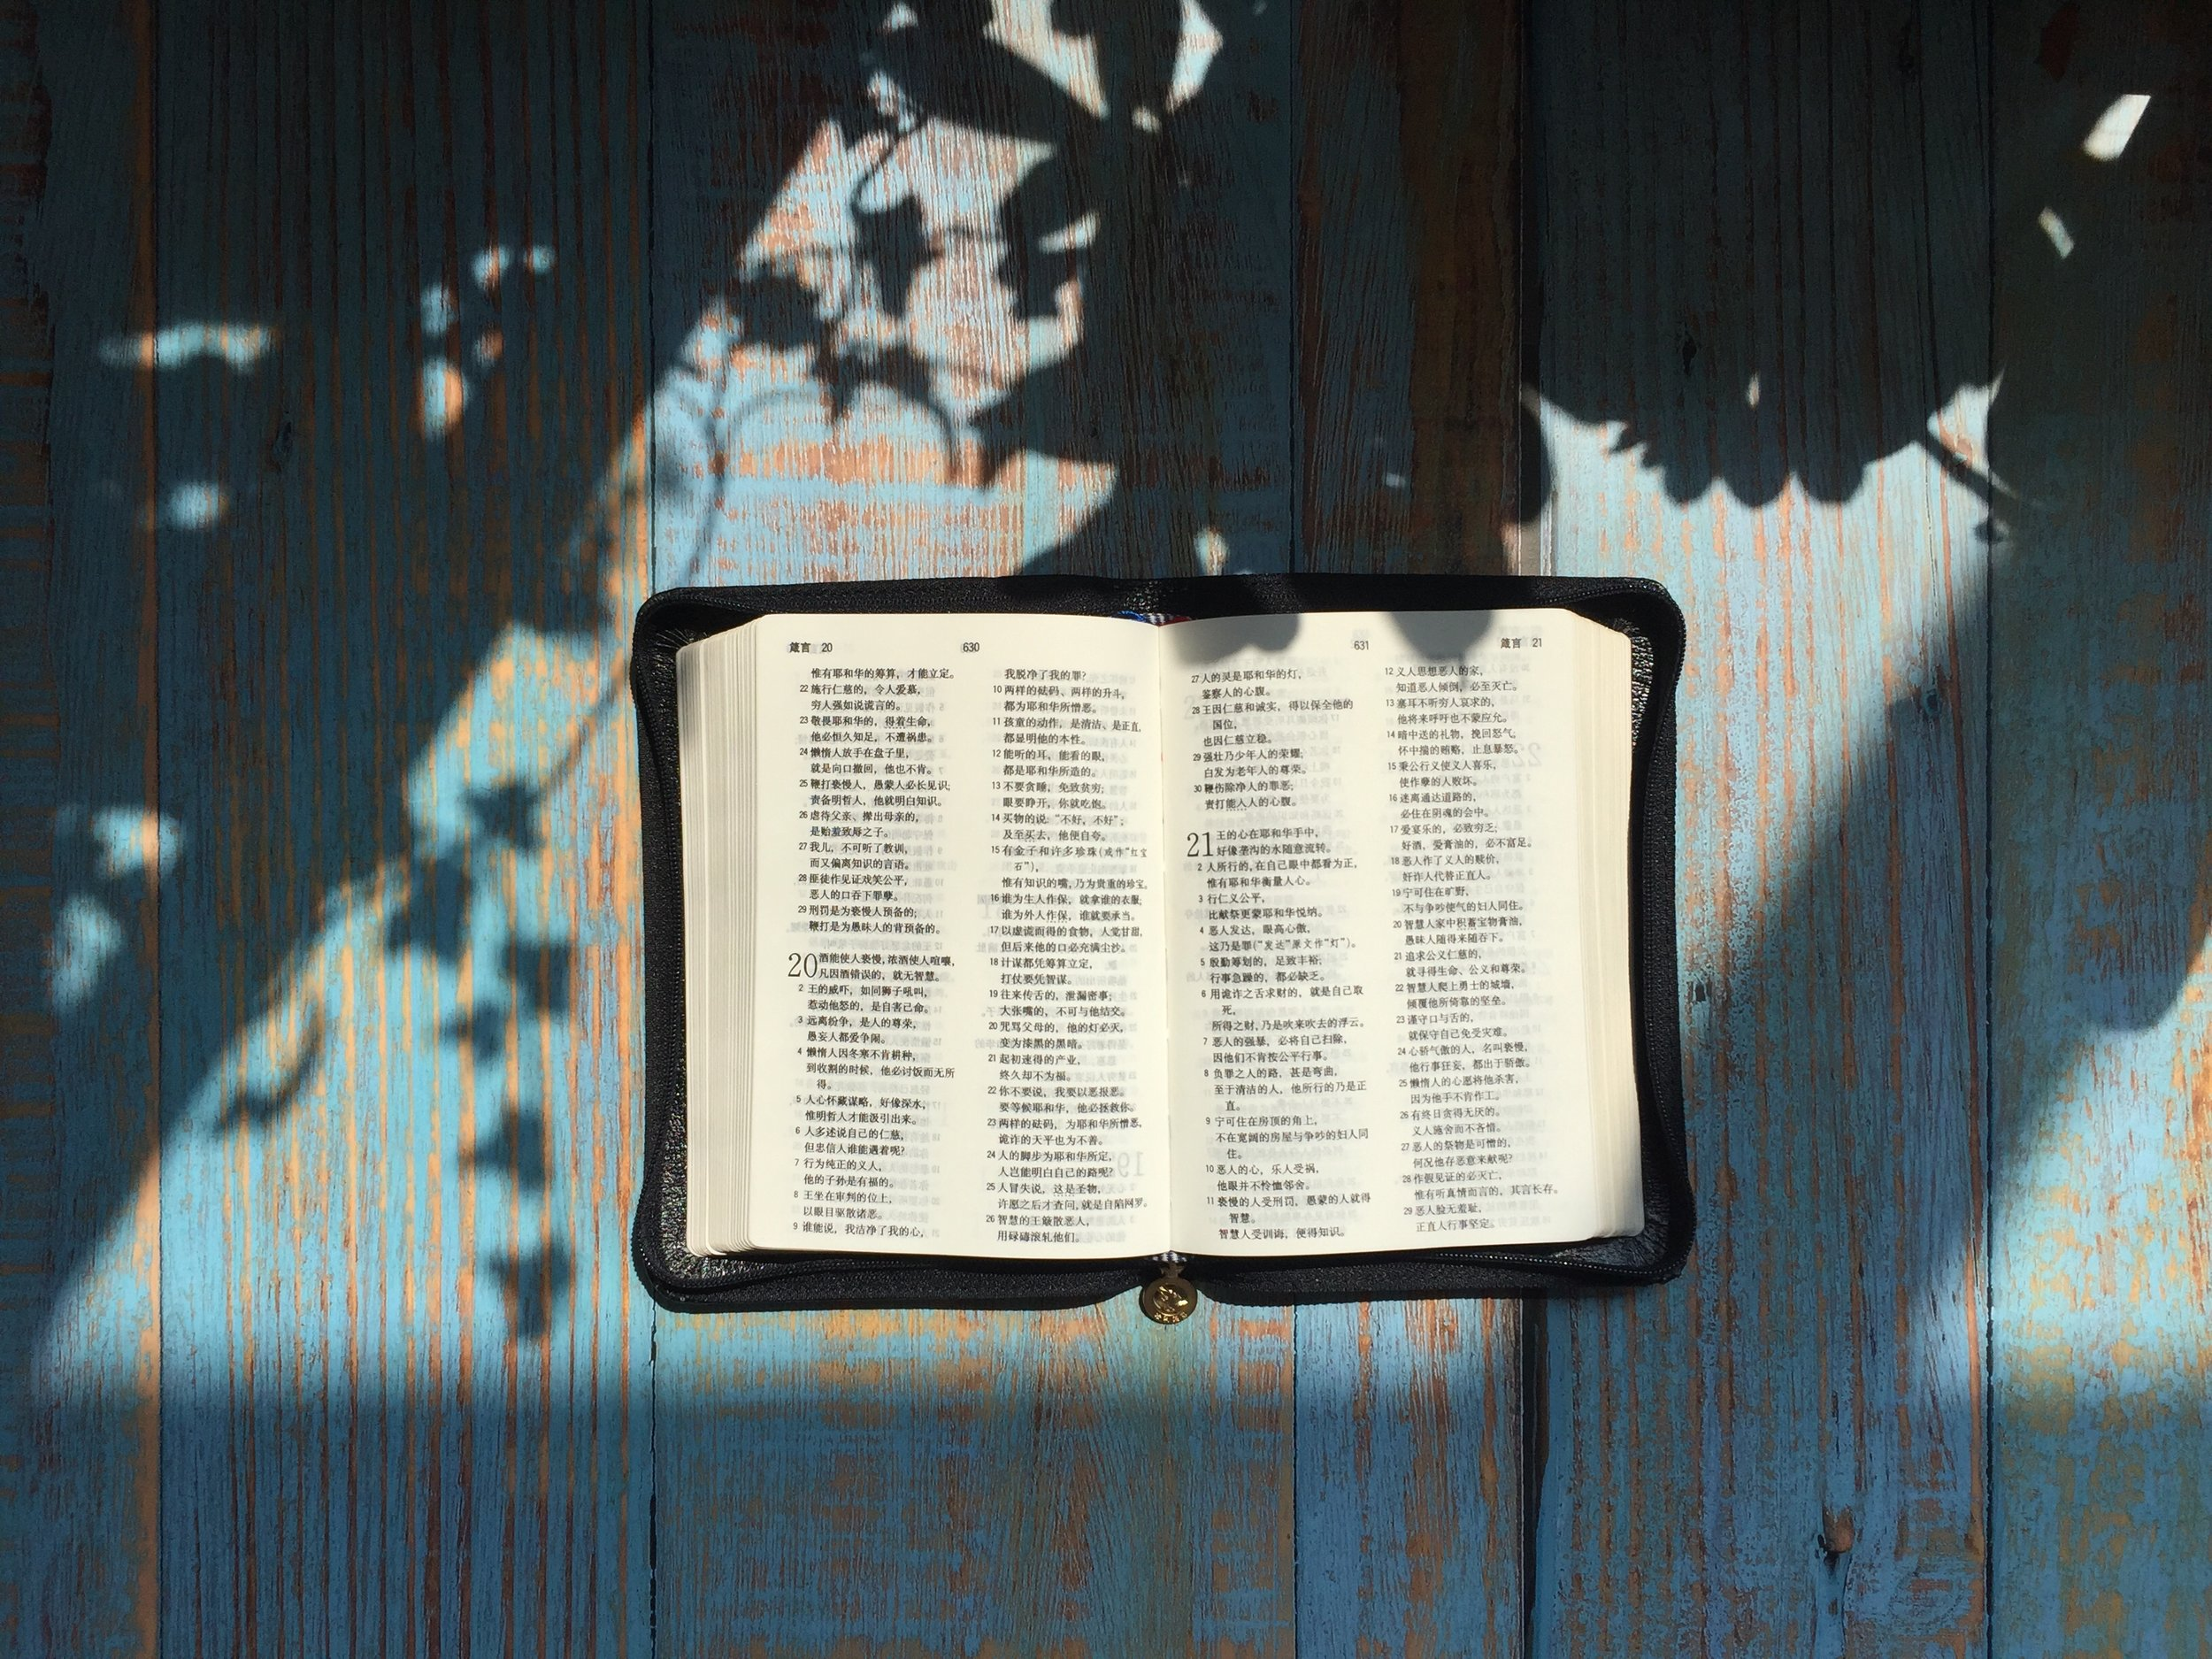 ACTS 11.19-26 -